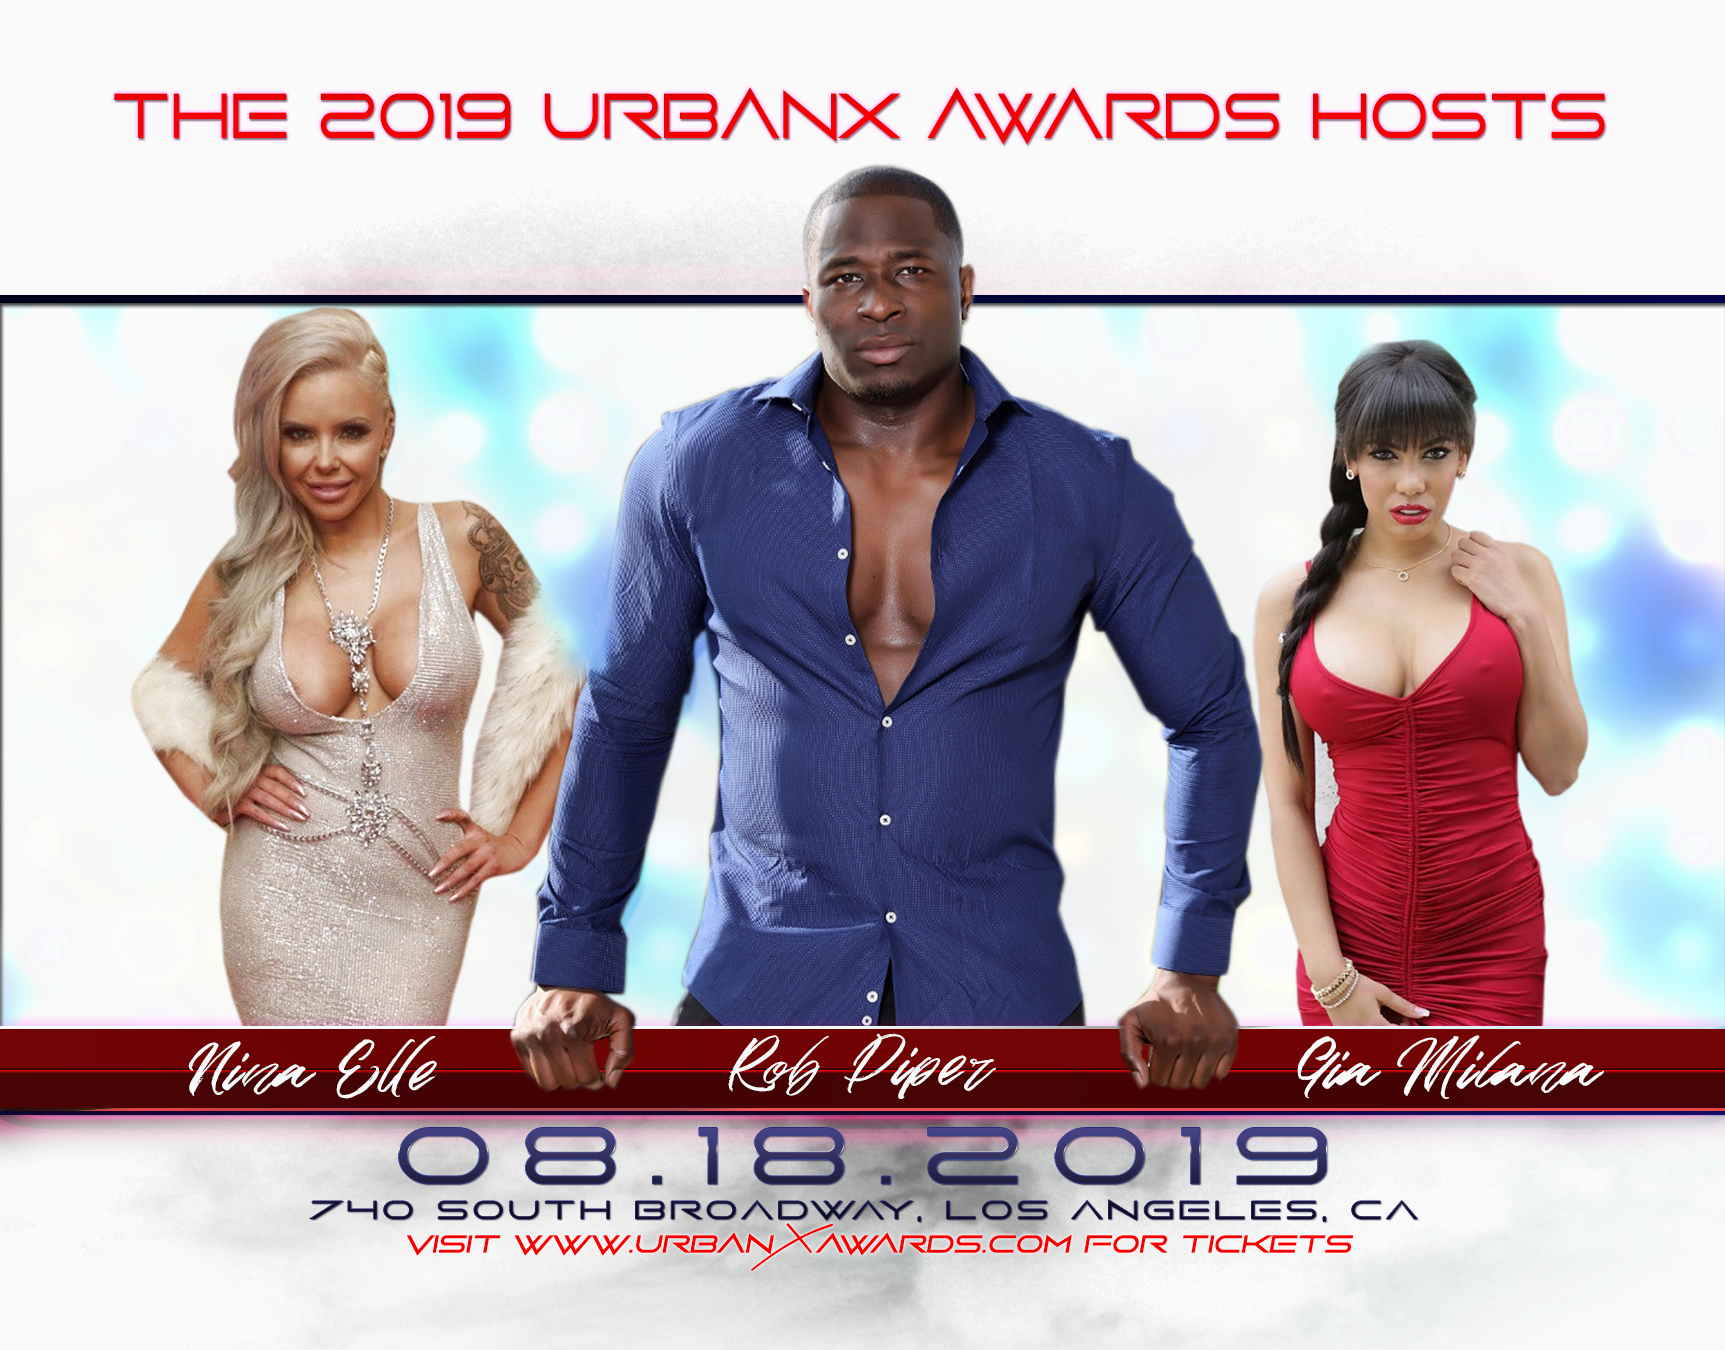 Urban X Awards Announces Weekend Events, onstage talent performing, and Tickets on Sale